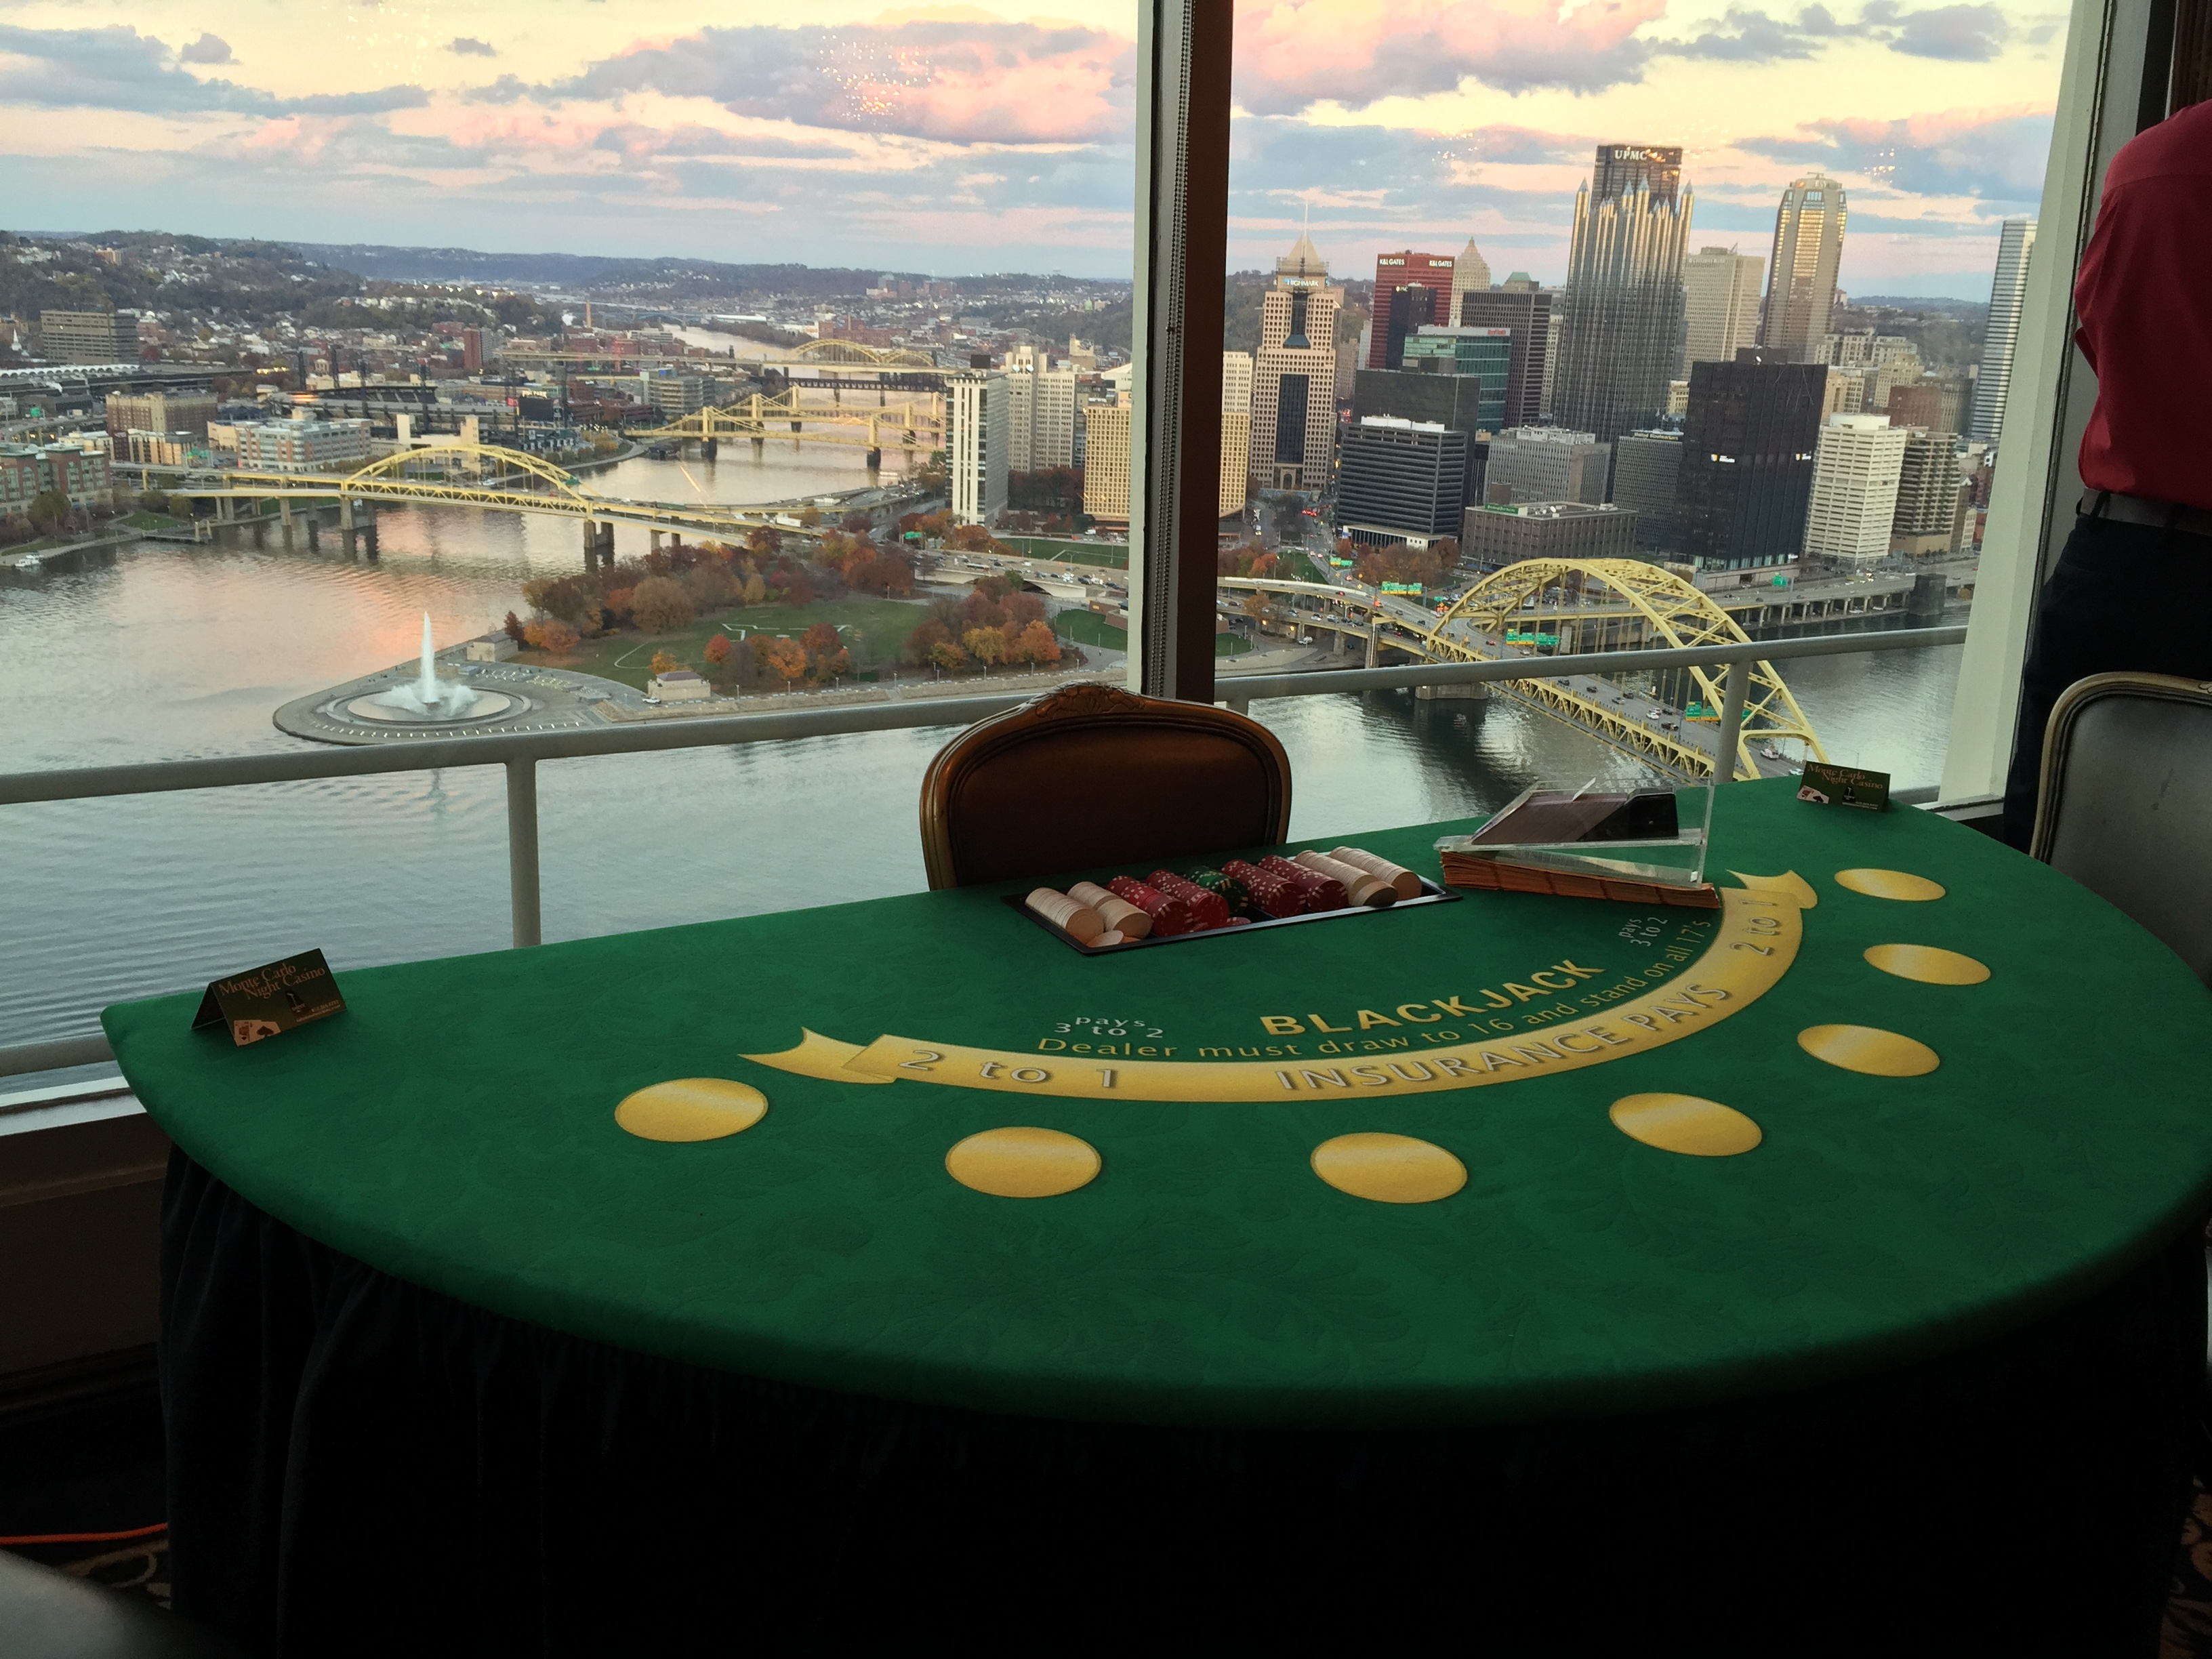 Blackjack, Pittsburgh Casino Party, Casino Theme Night